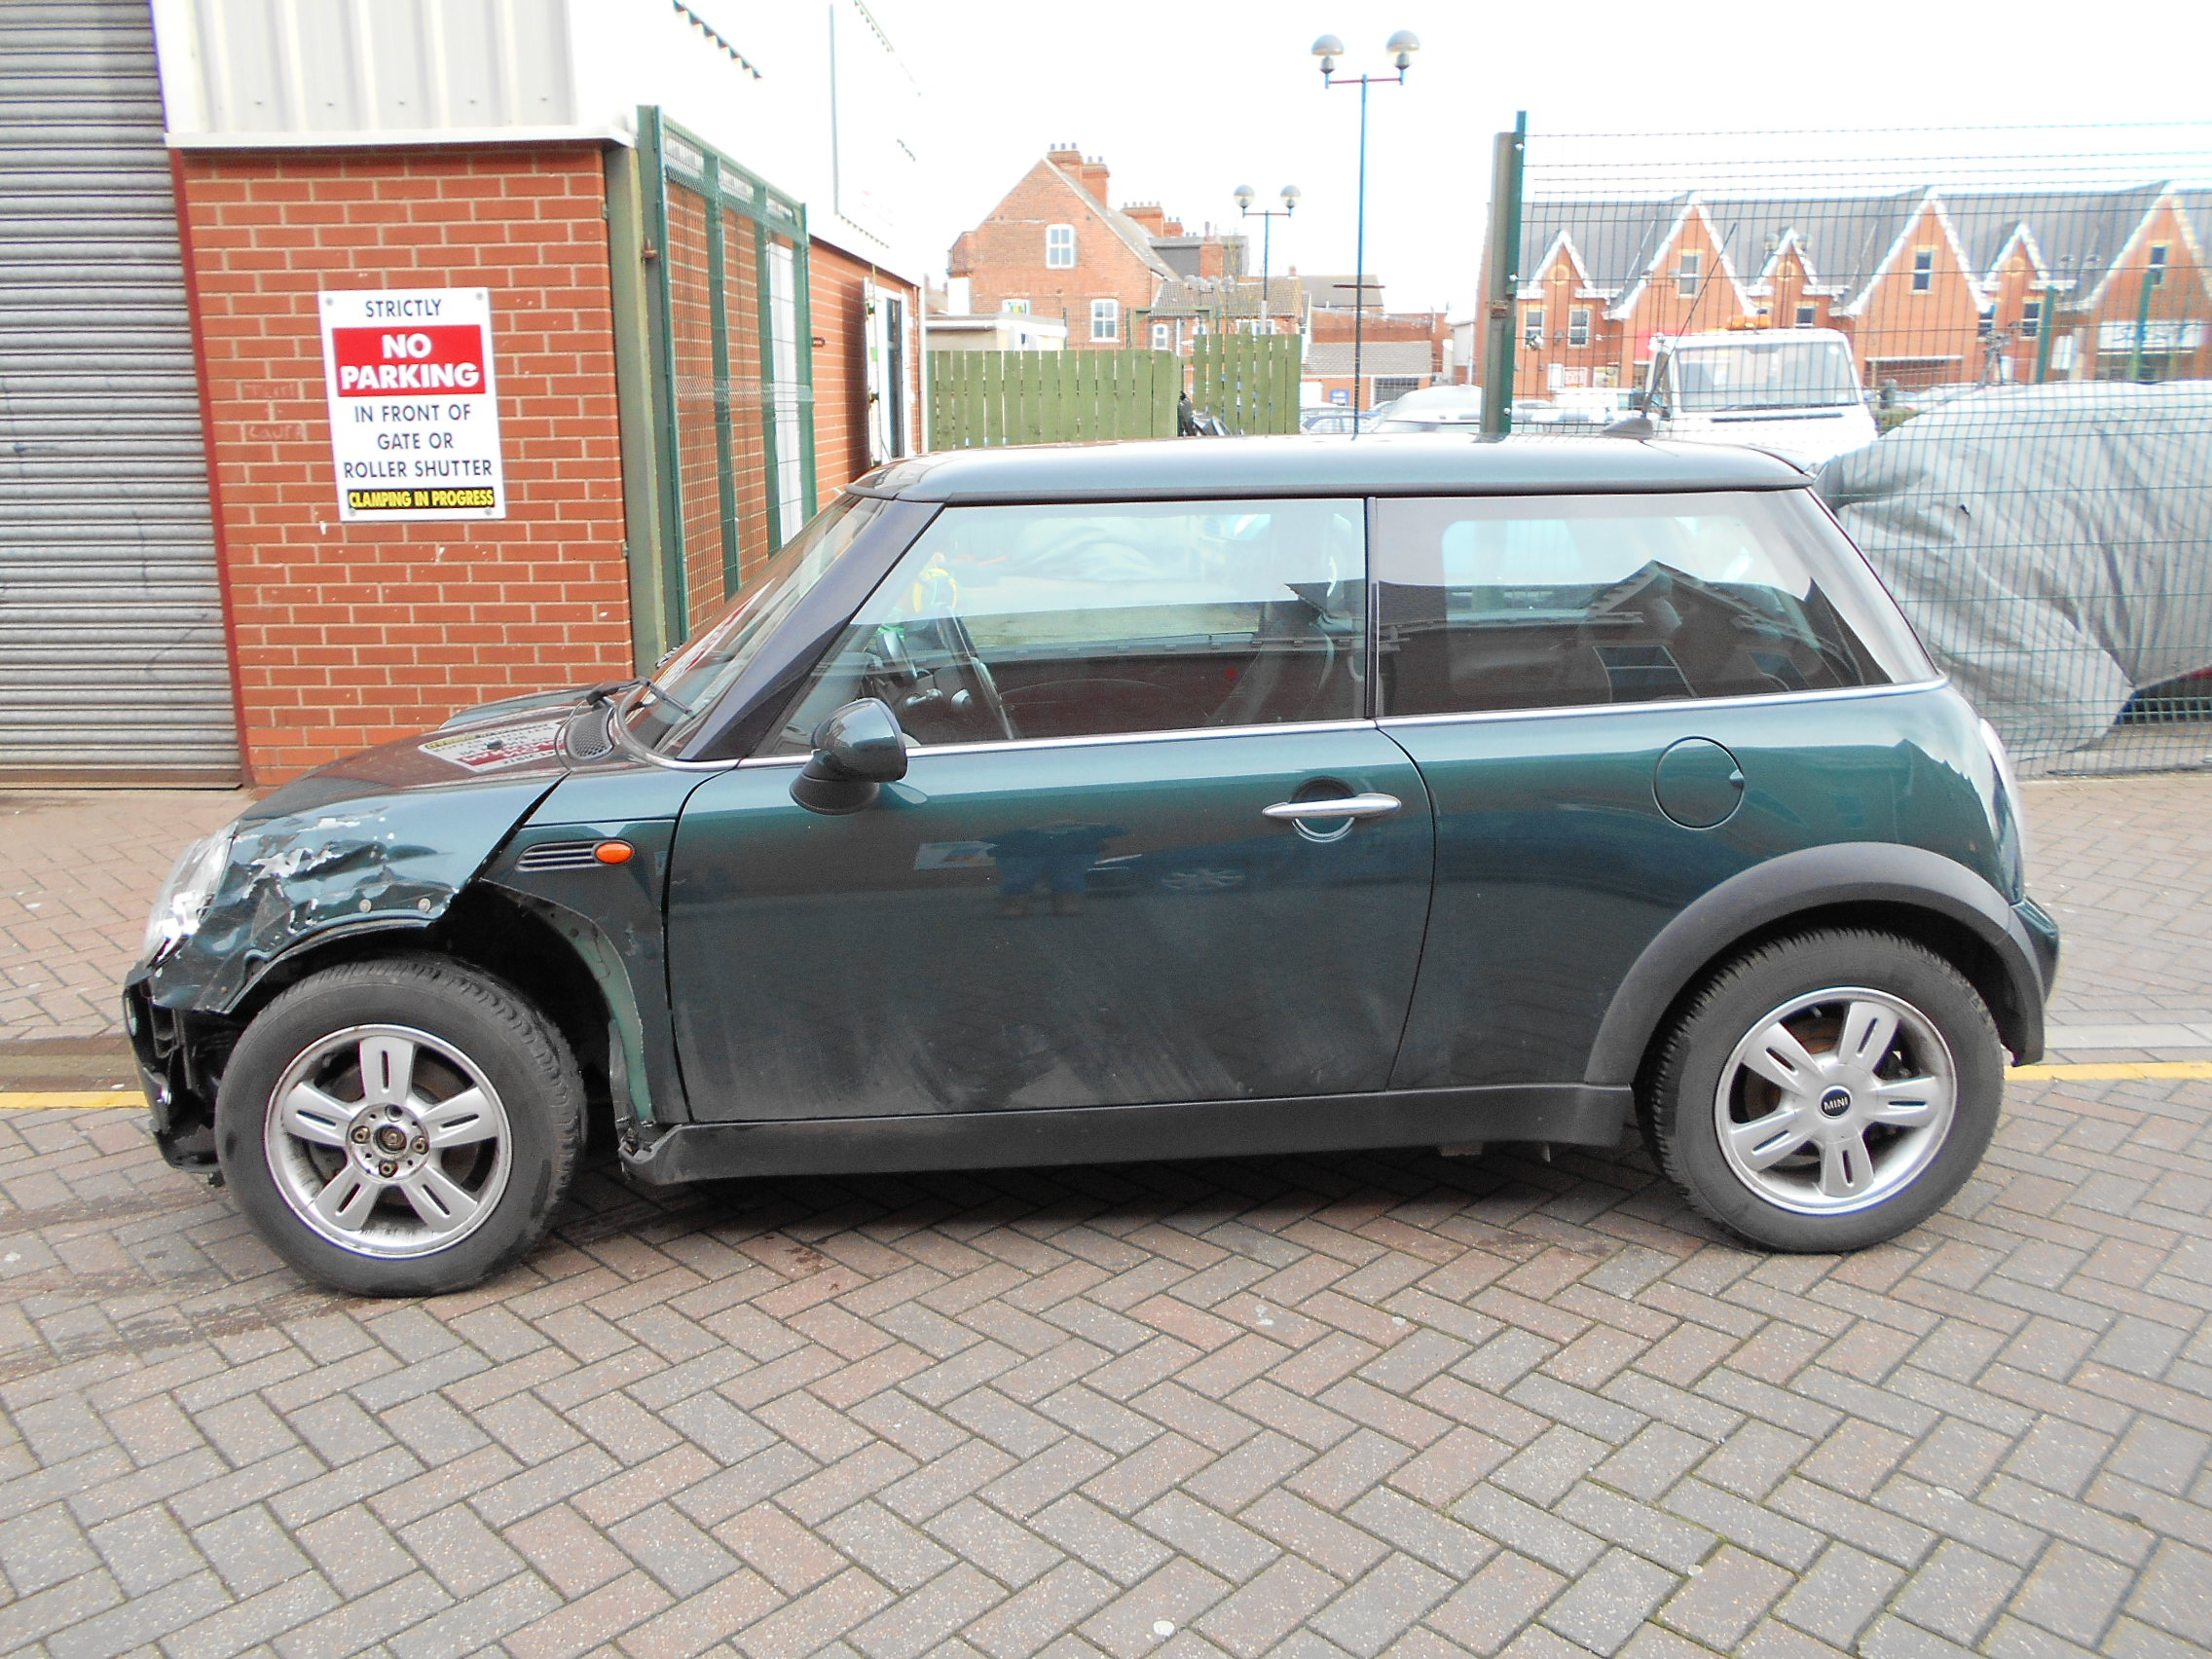 06 Green 1.6 BMW Mini One - 2